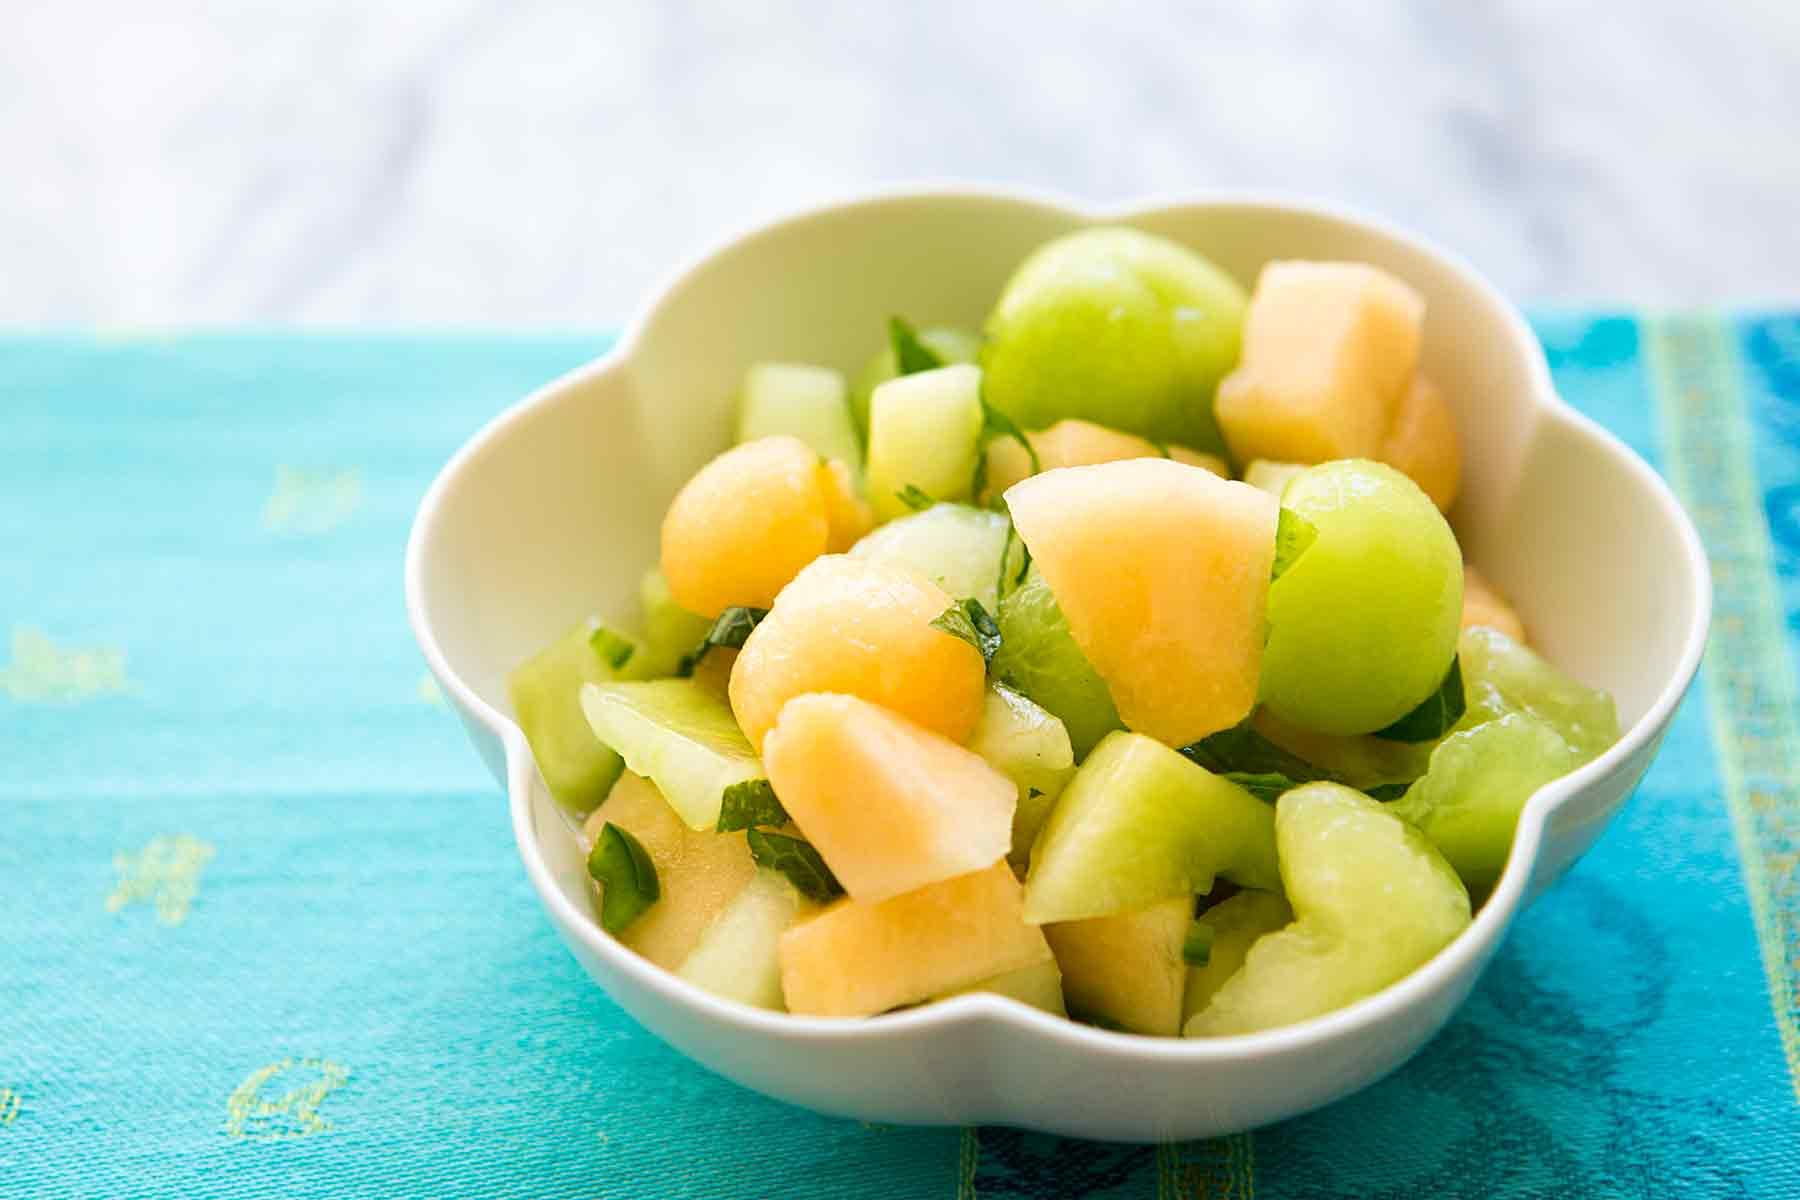 Melon Salad with Chili and Mint